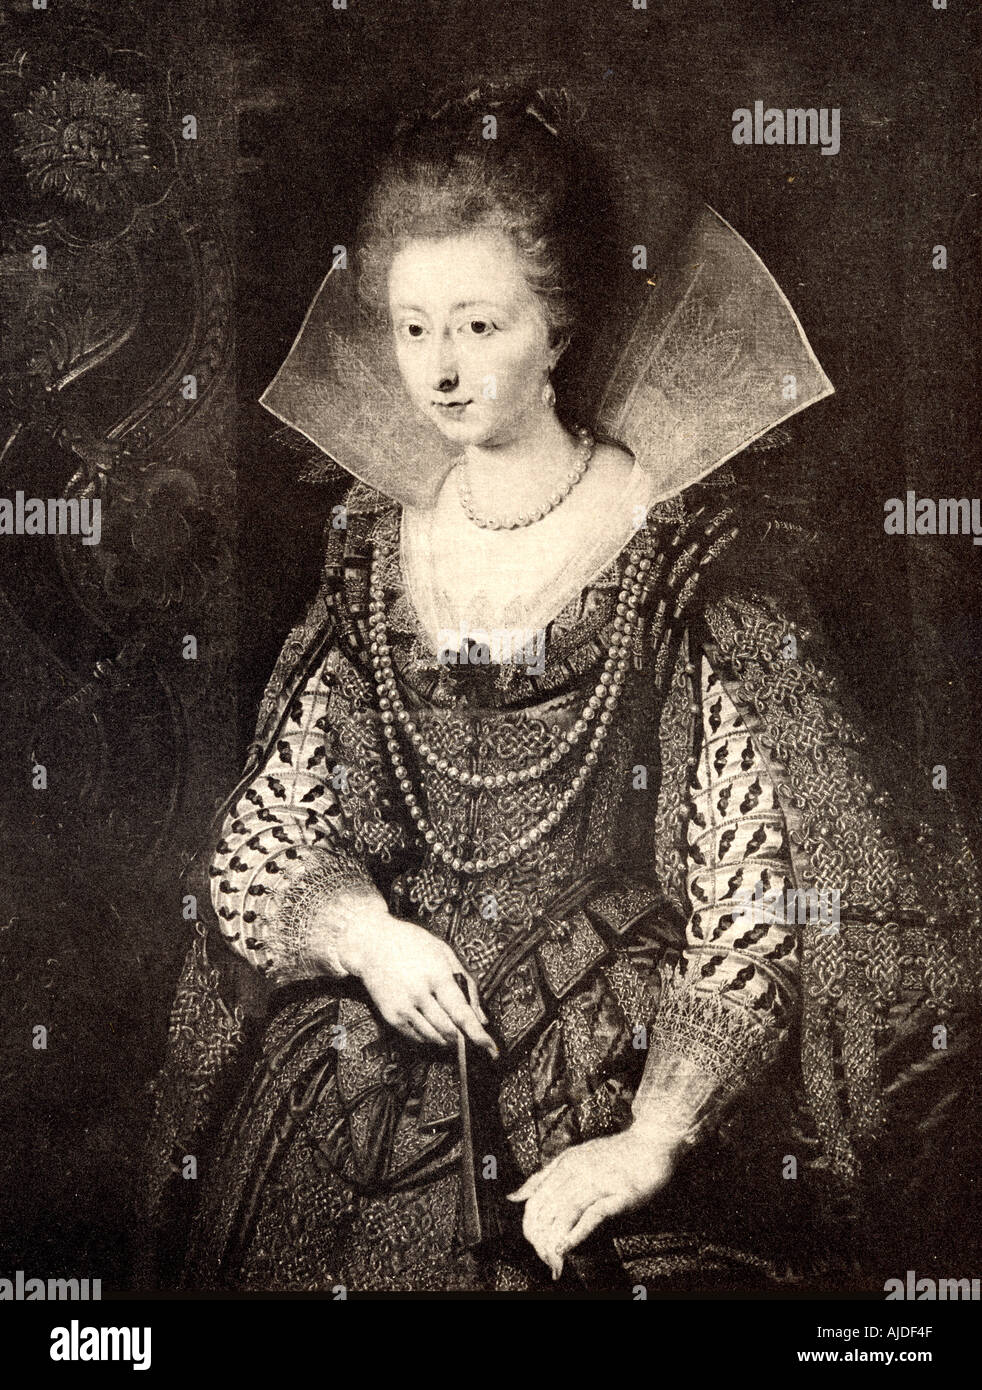 Marie de Medici, 1573 - 1642.  Queen of France as the second wife of King Henry IV.  From the painting by Franz Pourbus the younger. - Stock Image